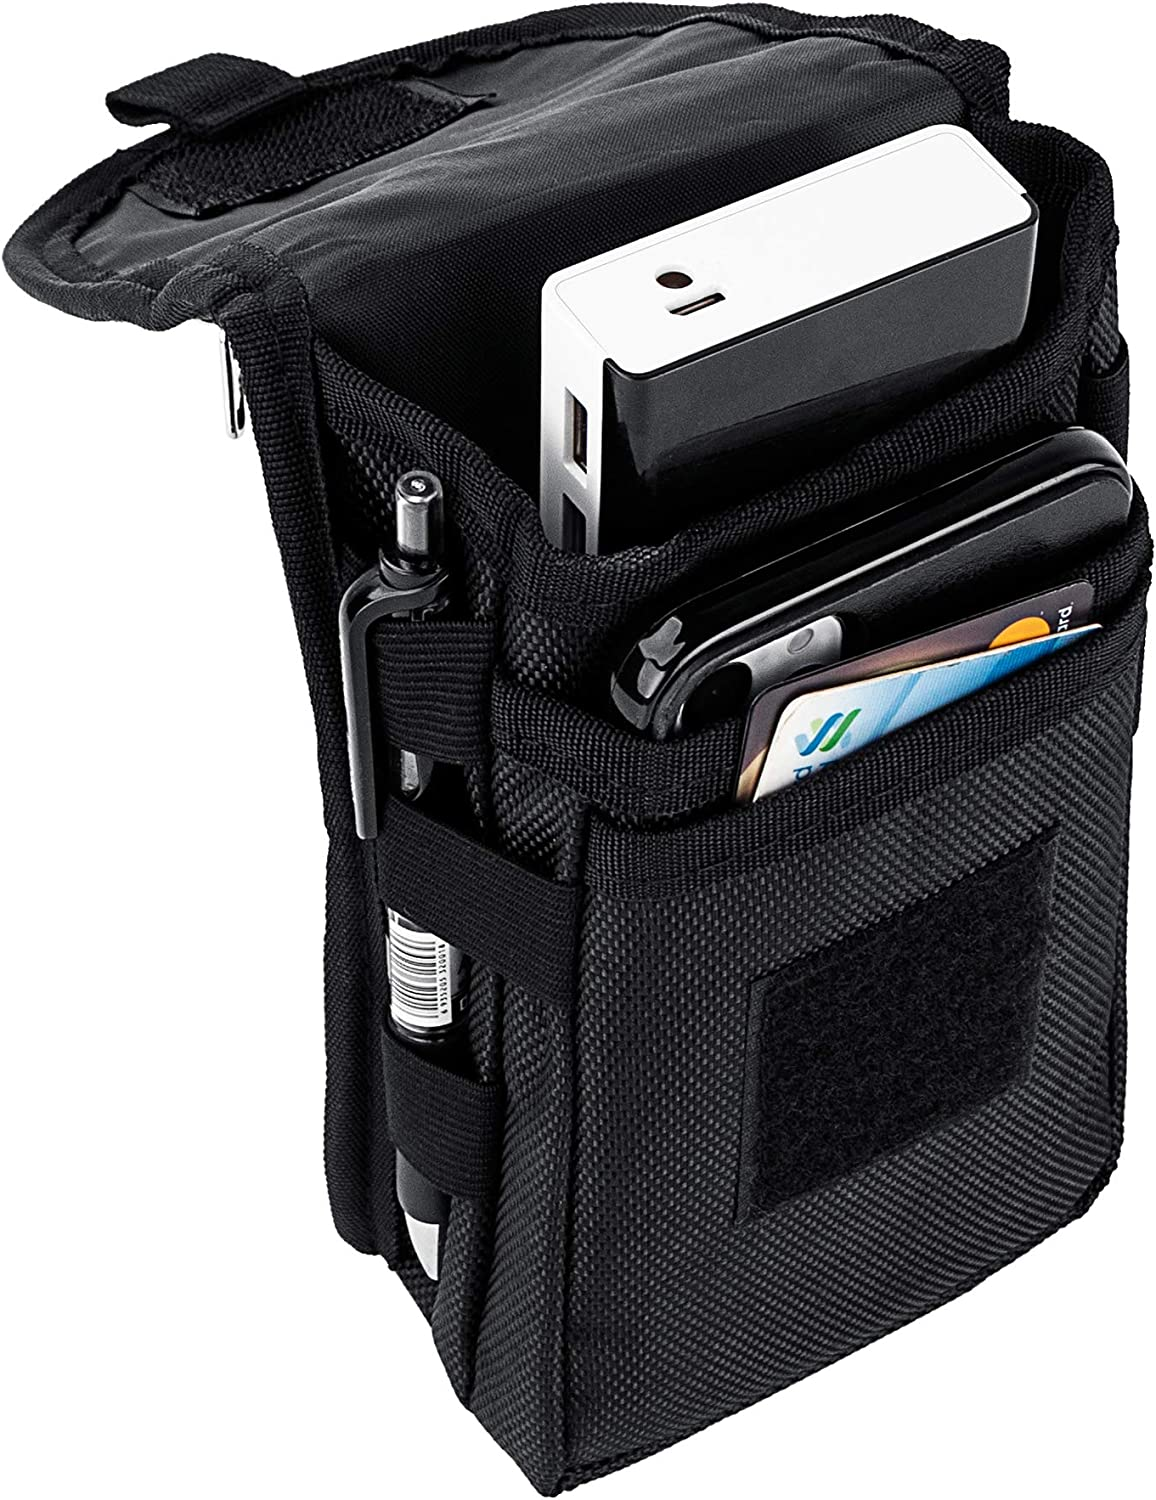 IronSeals Large Cell Phone Holster, Multi-Purpose Tool Pouch, Belt Loop Waist Pocket with D-Ring for Hiking, Camping, Rescue Essential